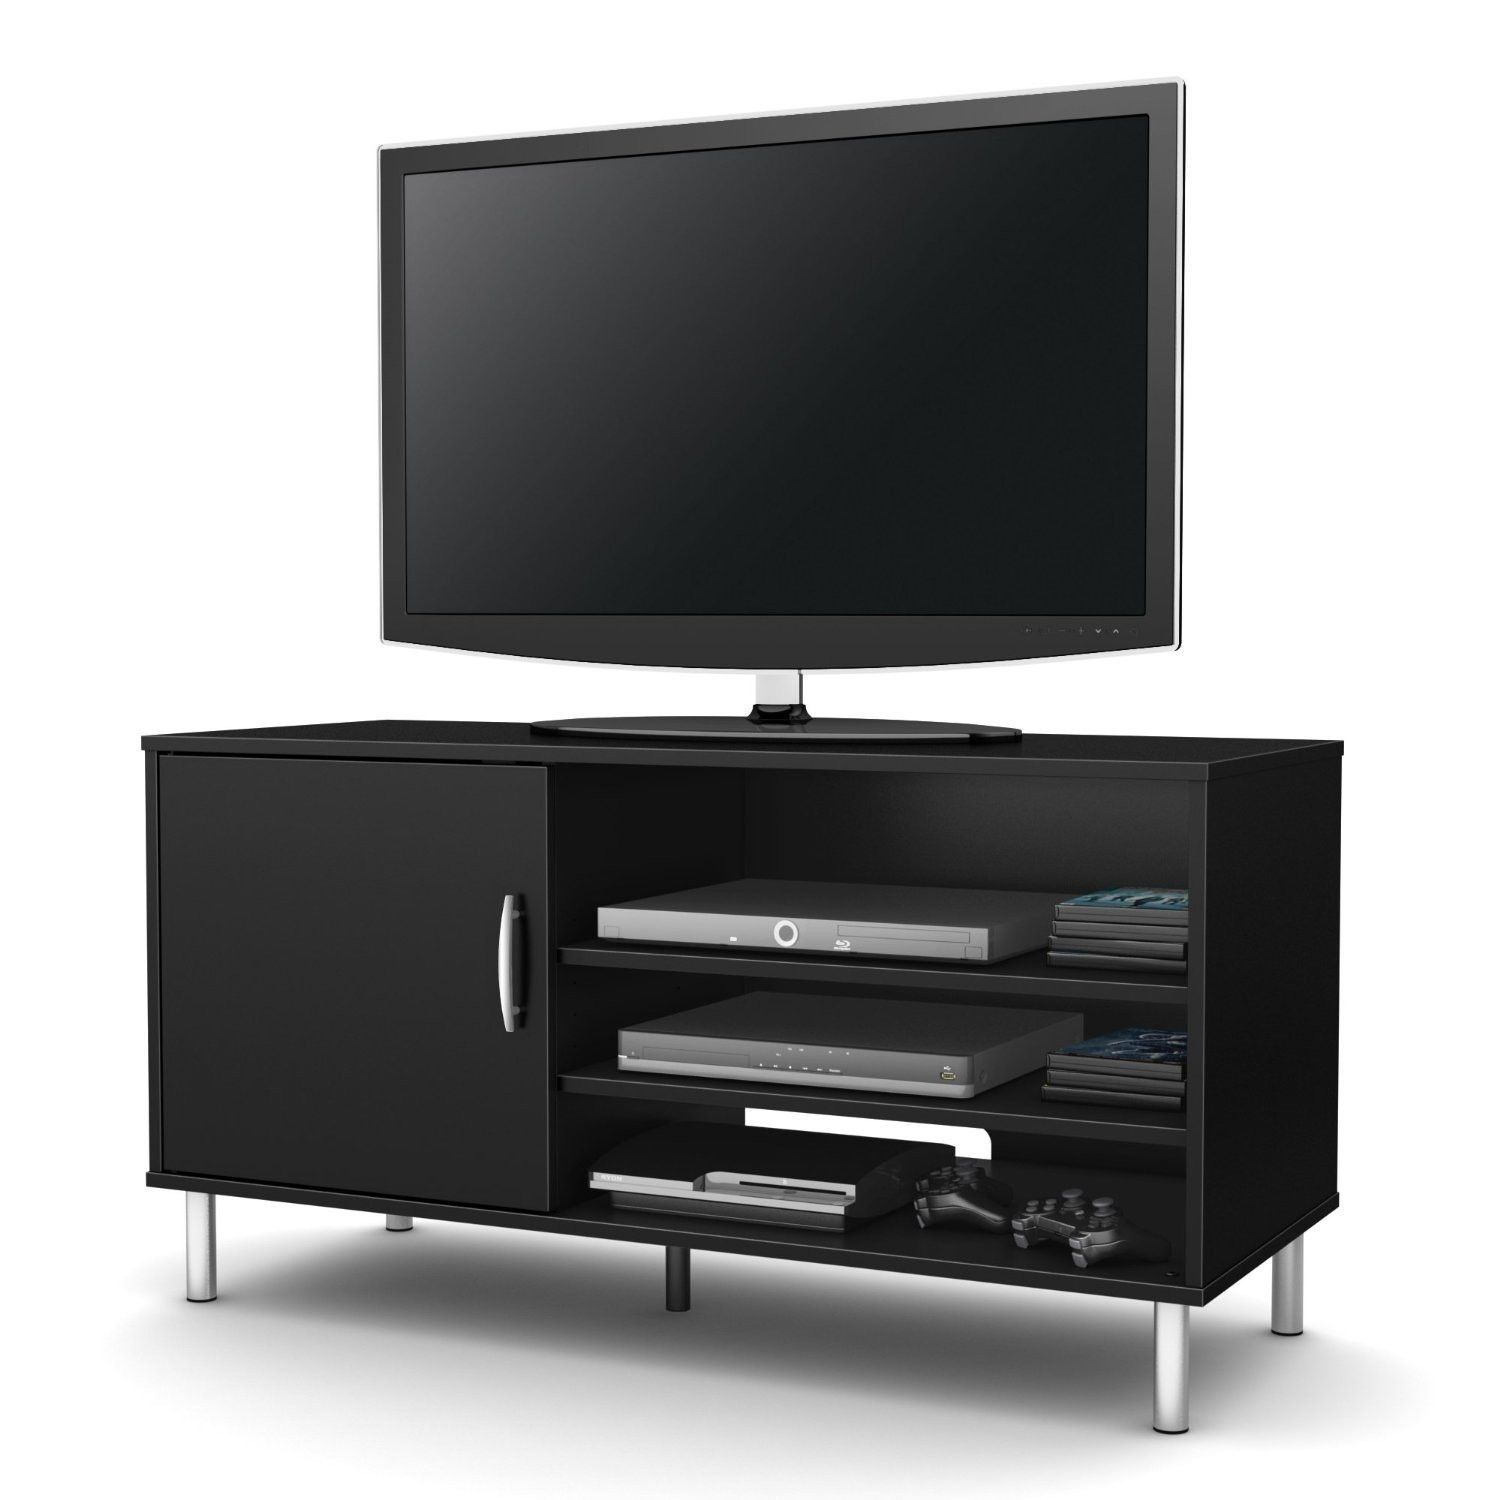 Modern Tv Stand In Black Wood Finish With Metal Legs Tv Stand